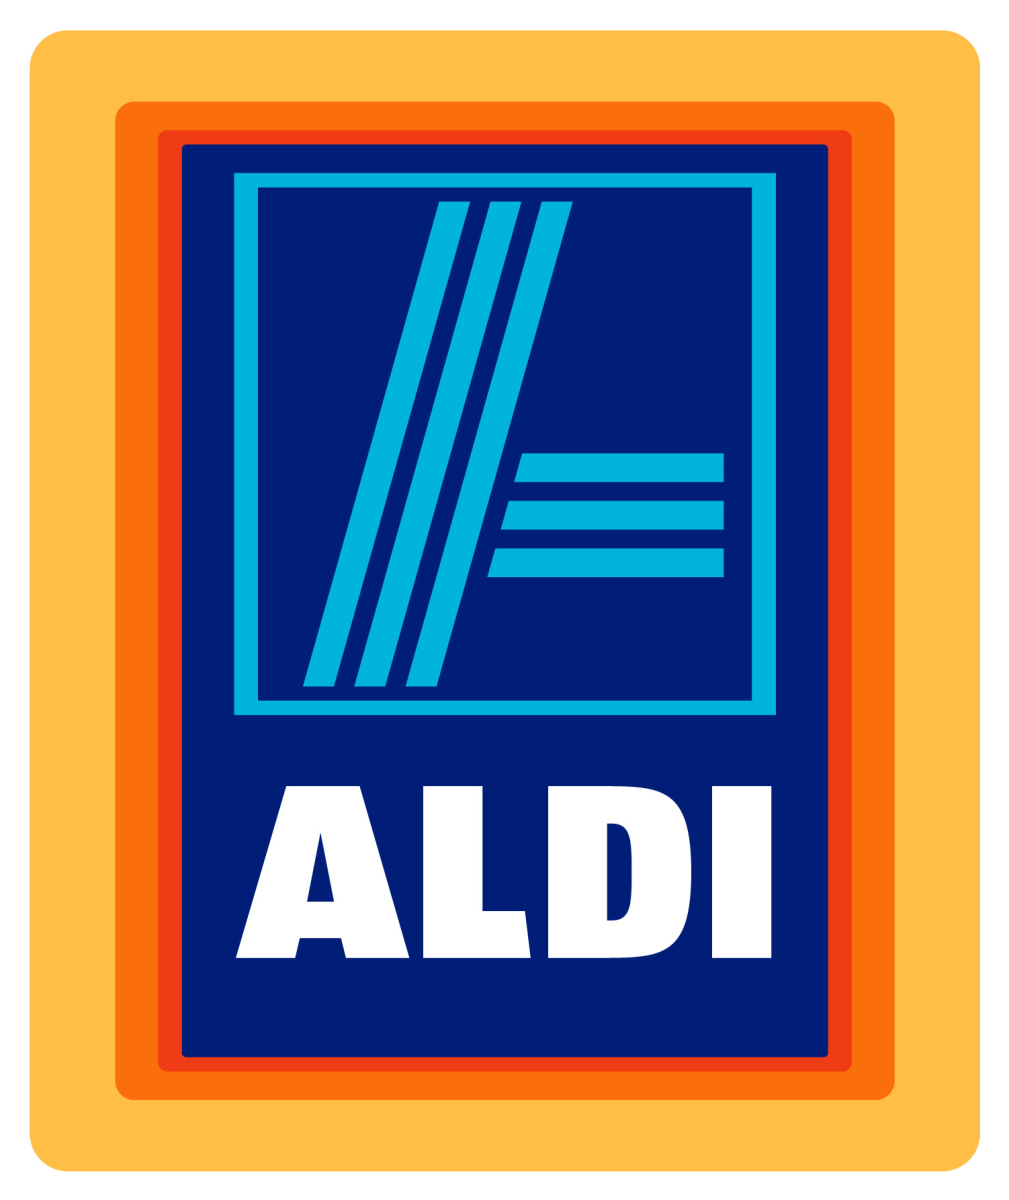 The Aldi logo.